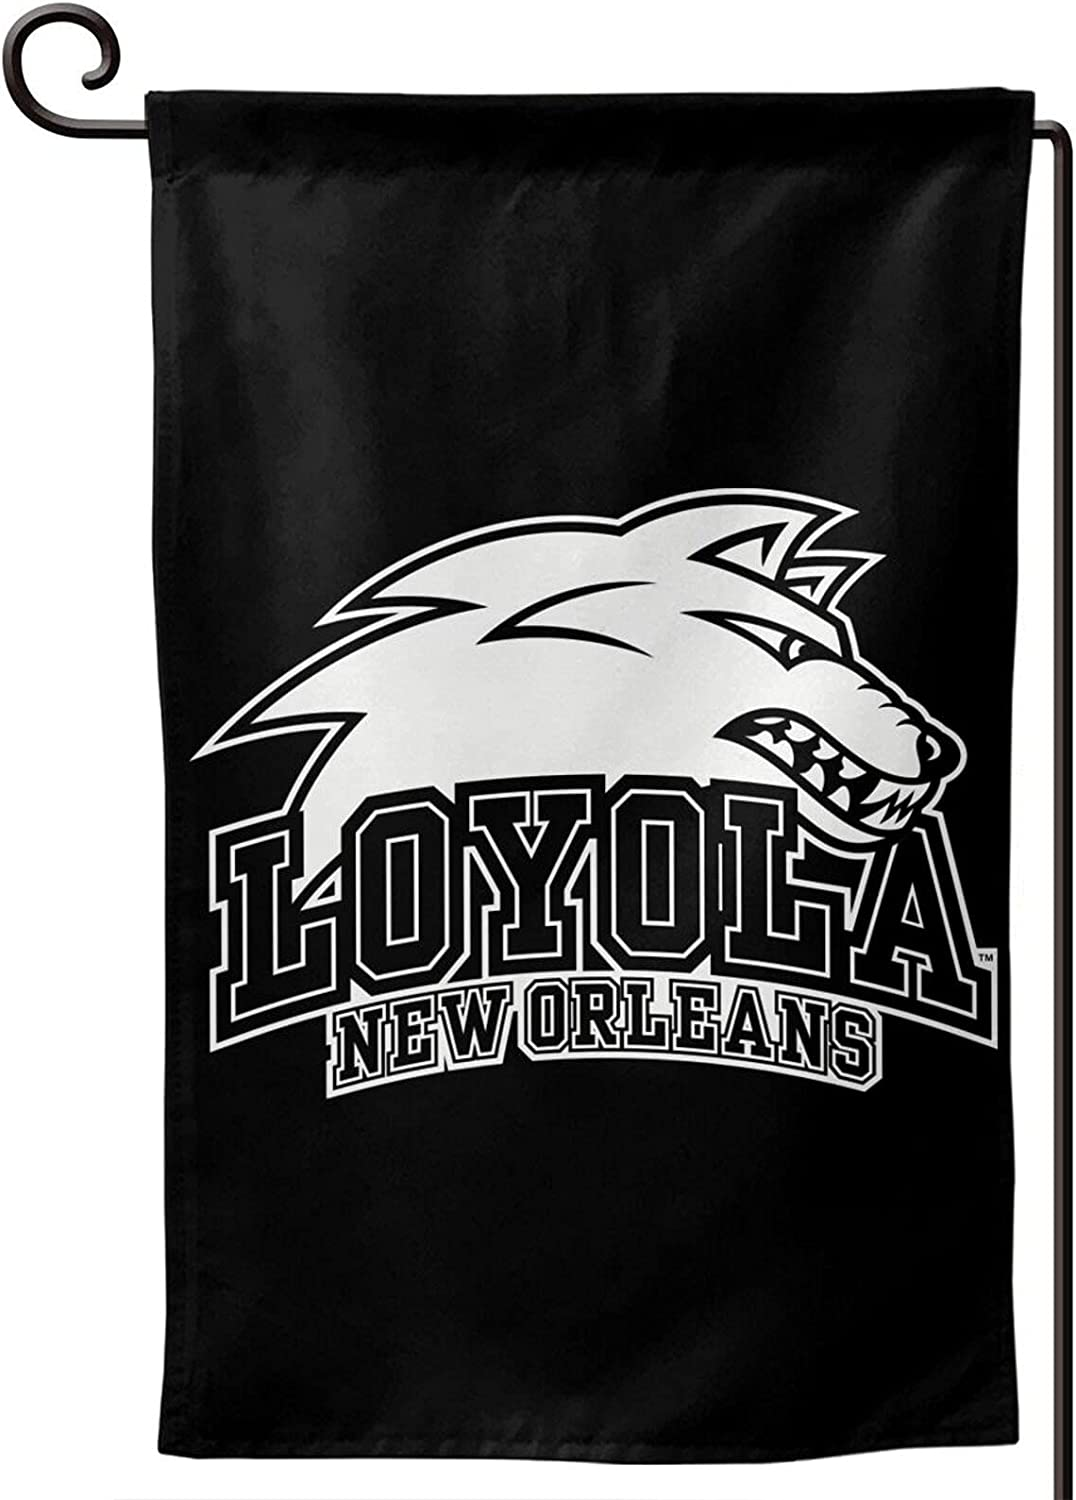 Loyola University New Orleans Logo 12.5 X 18 Inch Garden Flag Vertical Double-Sided Welcome Courtyard Outdoor Decoration